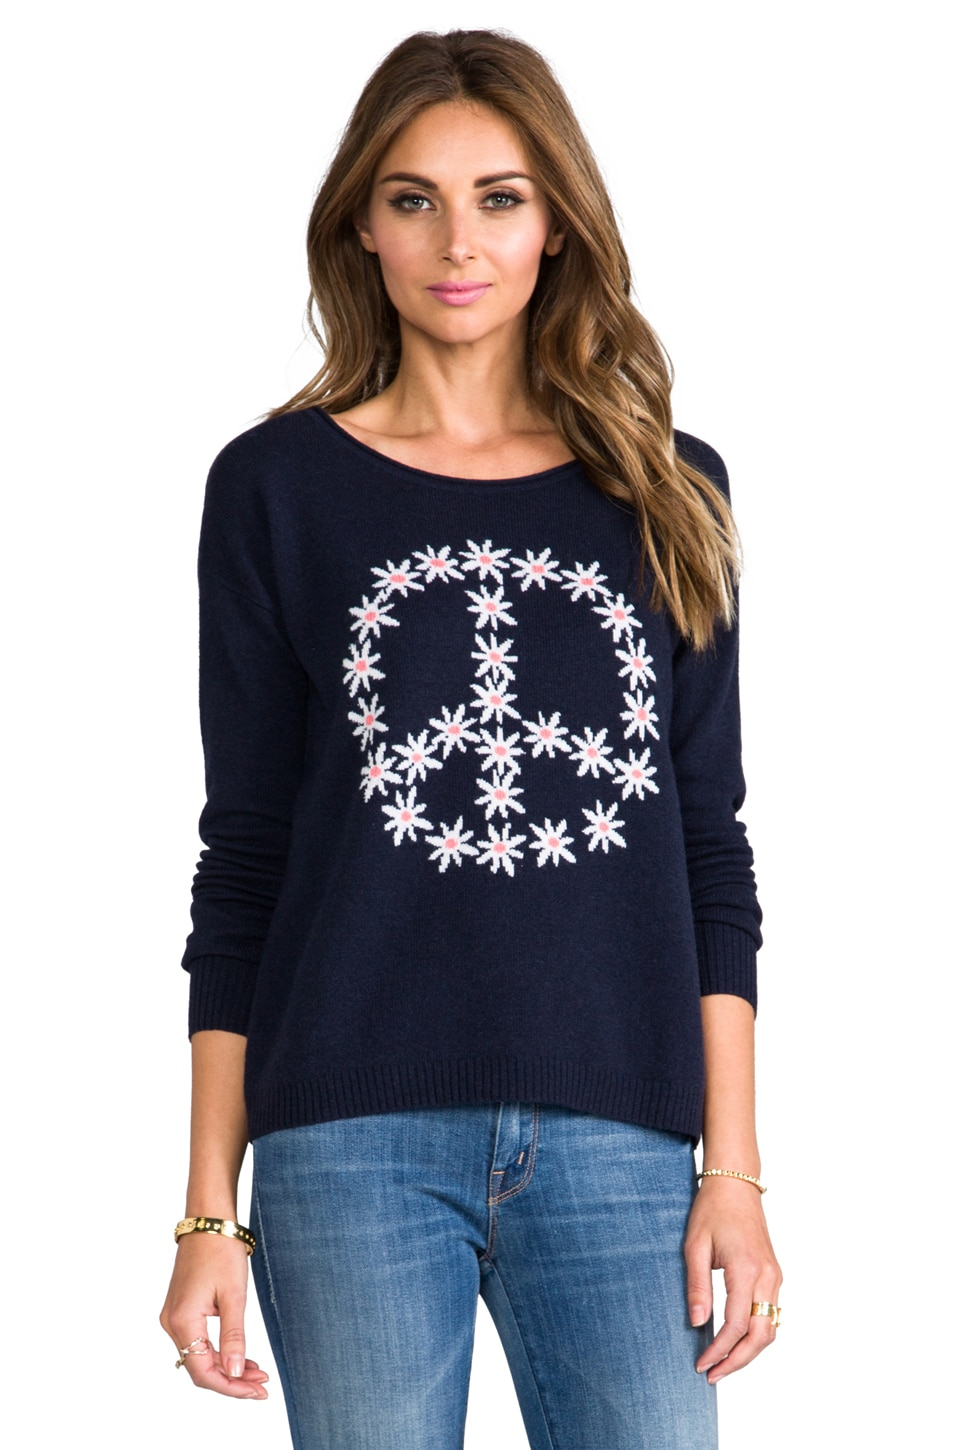 Autumn Cashmere Flower Peace Boxy Crew Neck Pullover in Navy Combo